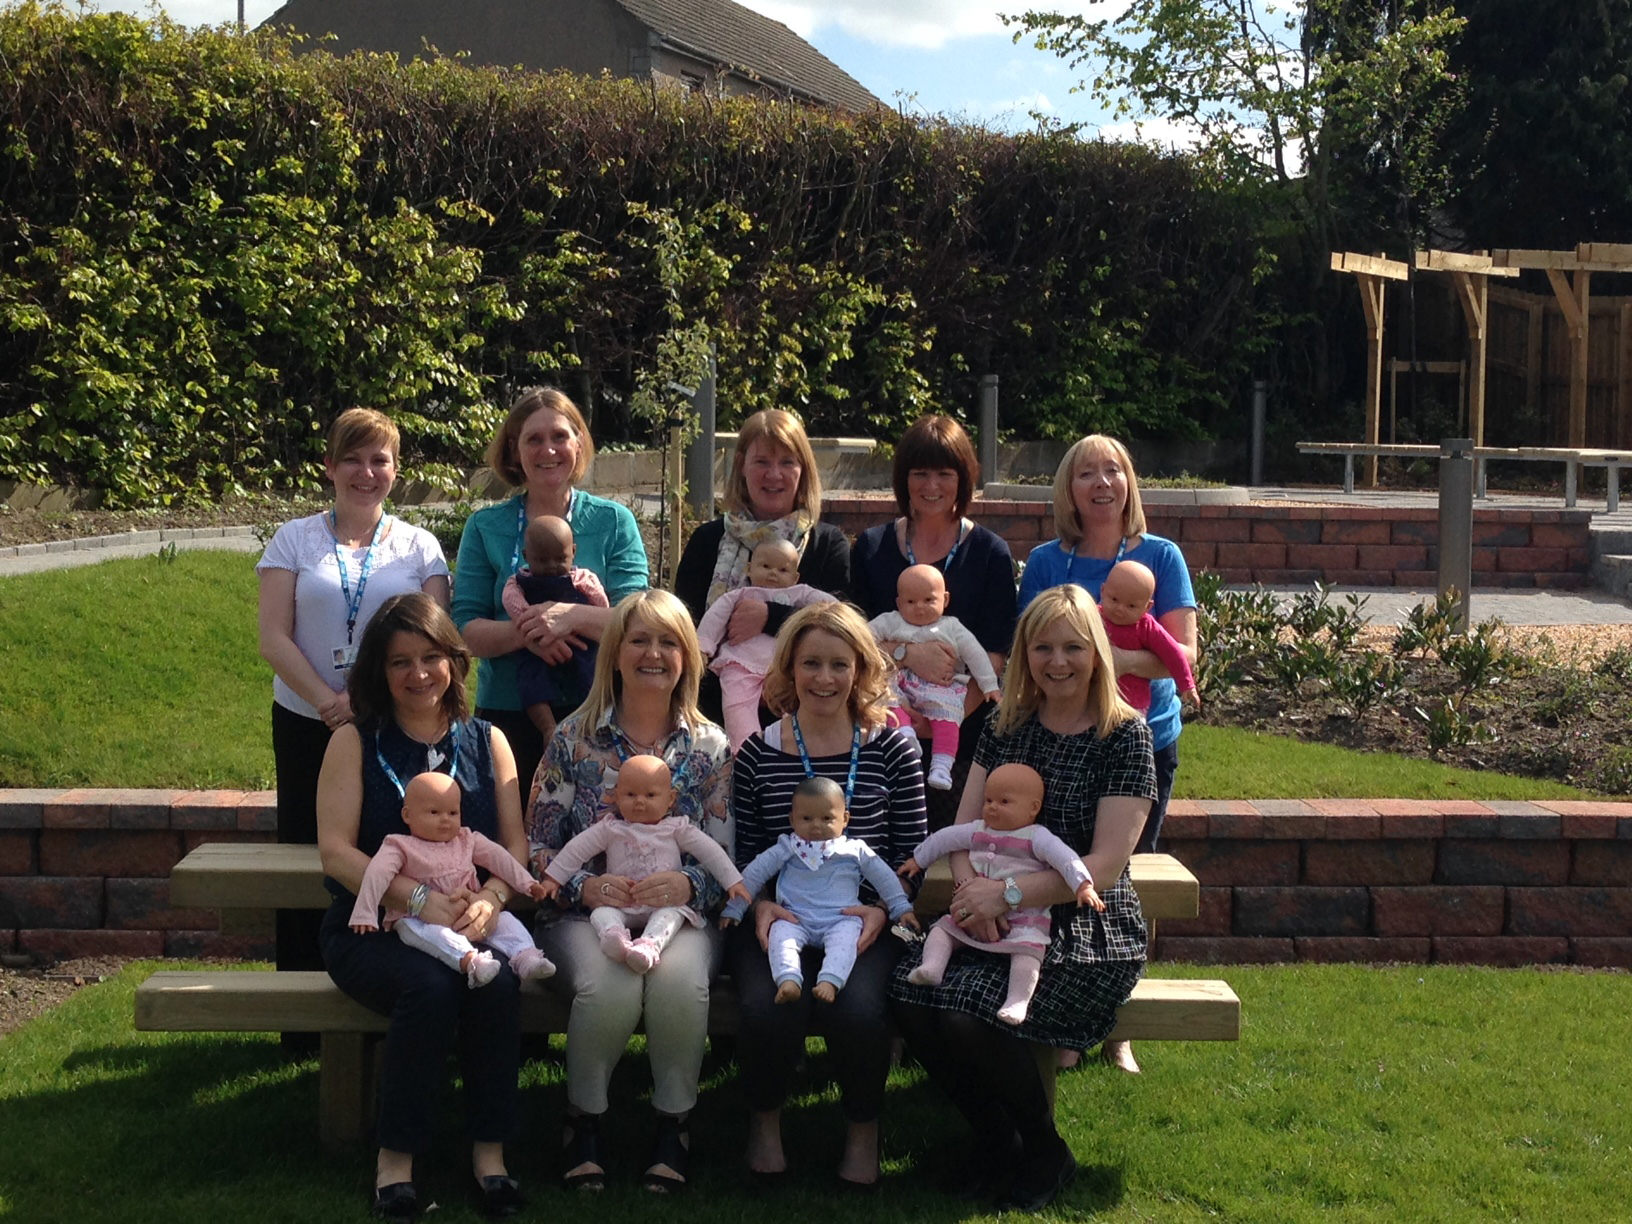 Members of the Family Nurse Partnership team in NHS Grampian, back from left, Sallyanne Crooks, Claire James, Fiona Cursiter, Gail Robertson, Shona Beattie and, front from left, Jill Mackie, Louise Murray, Karen Hudson and Sharon Clark, with the model babies.